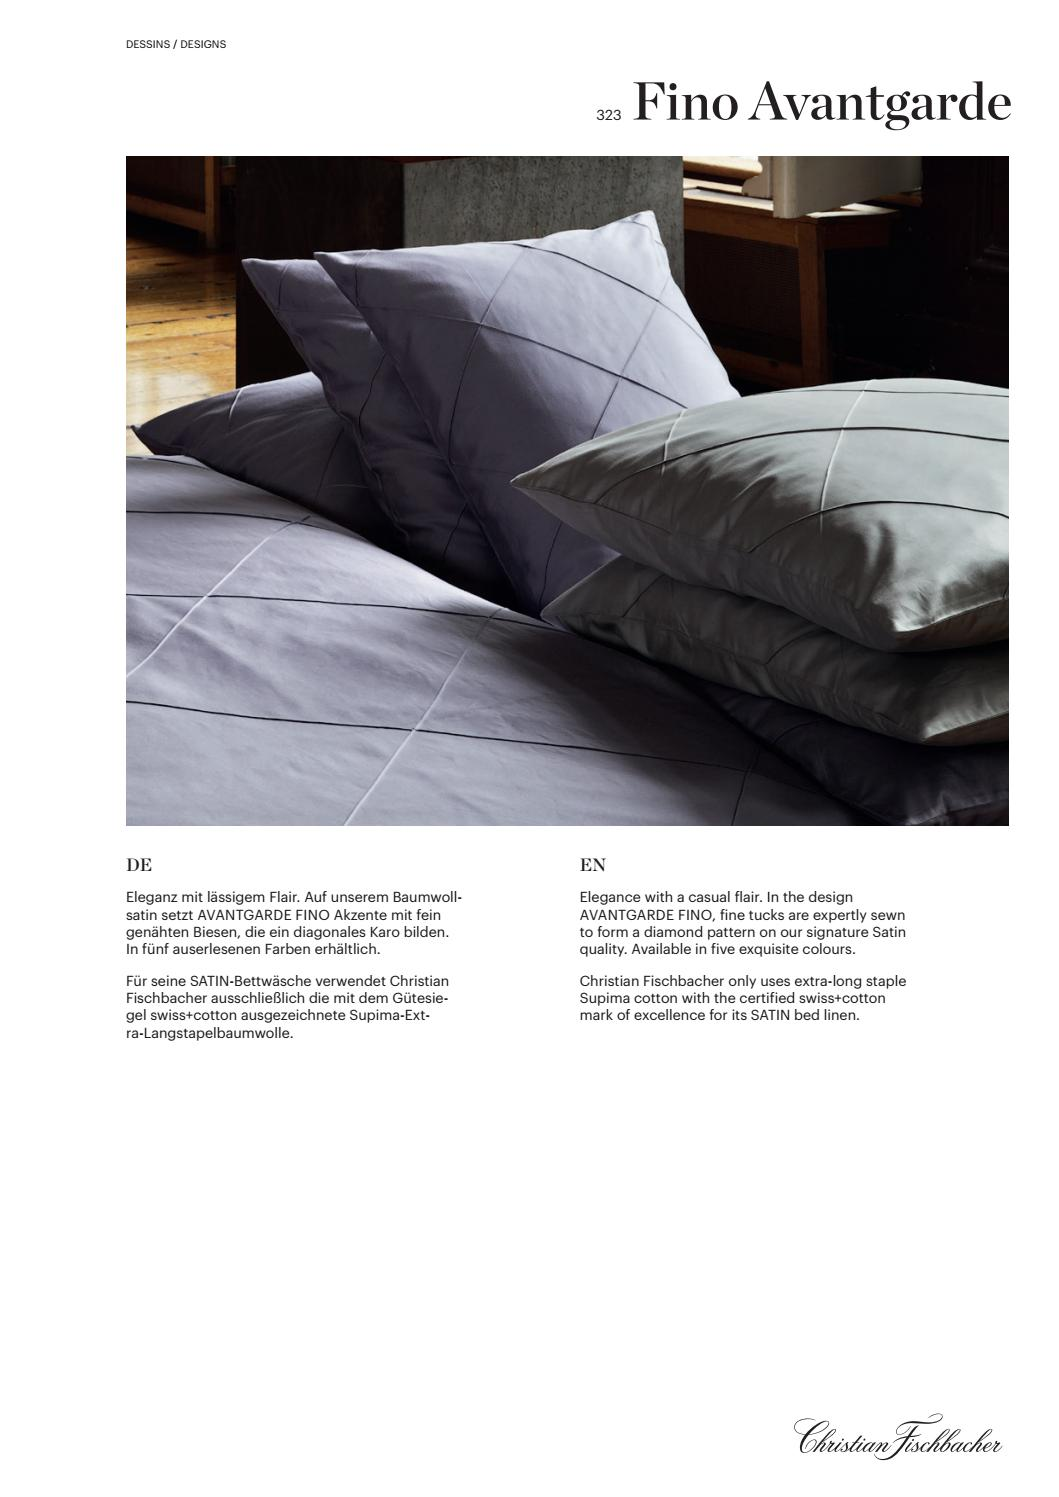 Elegance Bettwäsche Christian Fischbacher Bed Linen Collection By Christian